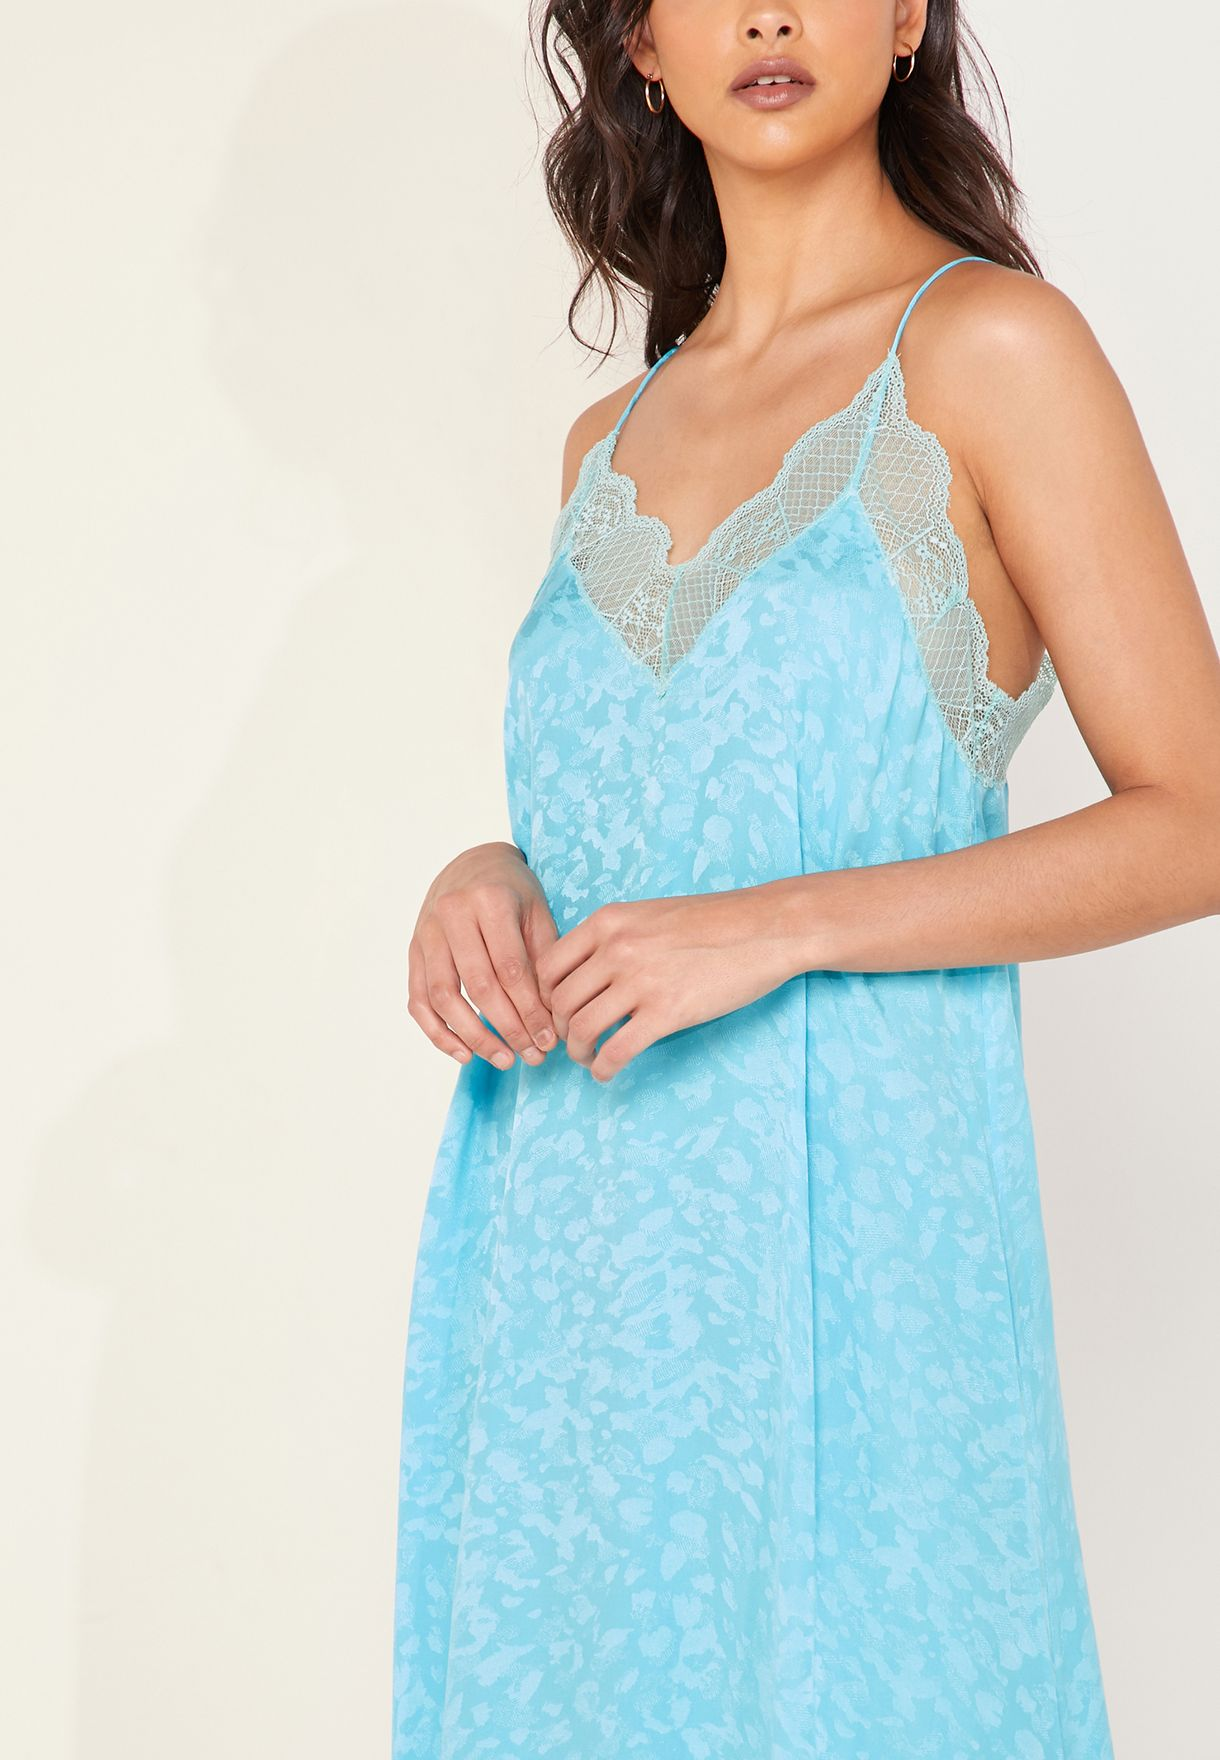 Risty Jacquard Lace Trim Cami Dress